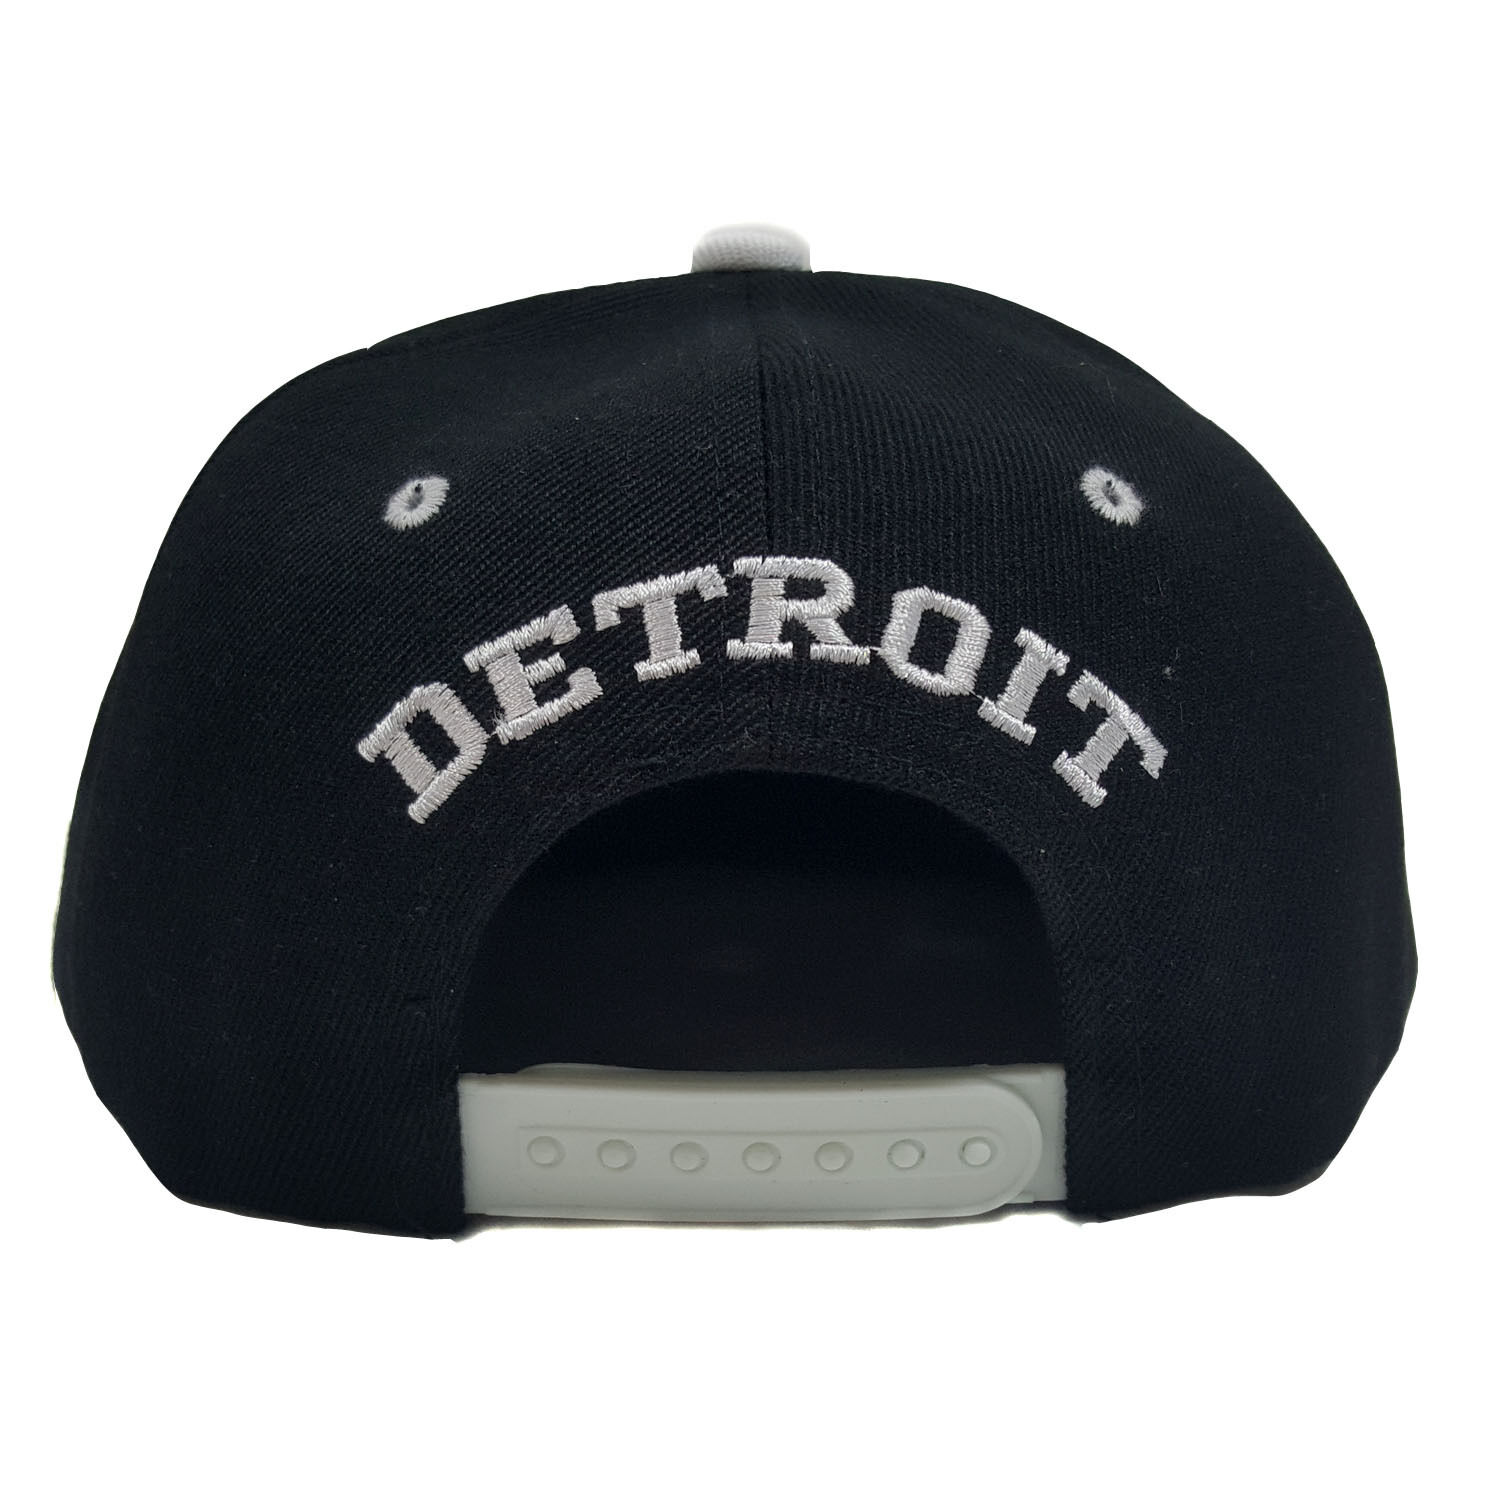 DETROIT 3D EMBROIDERED WHITE BLACK/WHITE FLAT BILL TWO TONE BLACK/WHITE WHITE SNAPBACK CAP f91f71